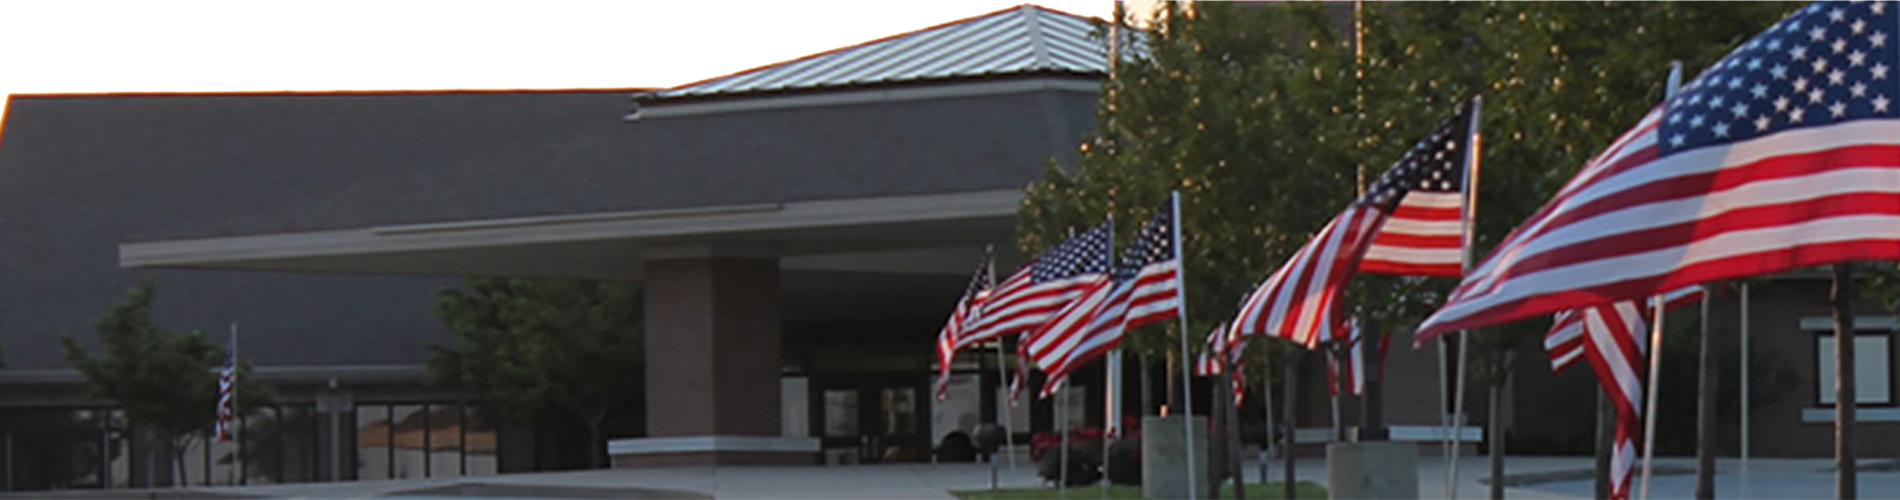 East Oldham Middle School - Front Entrance